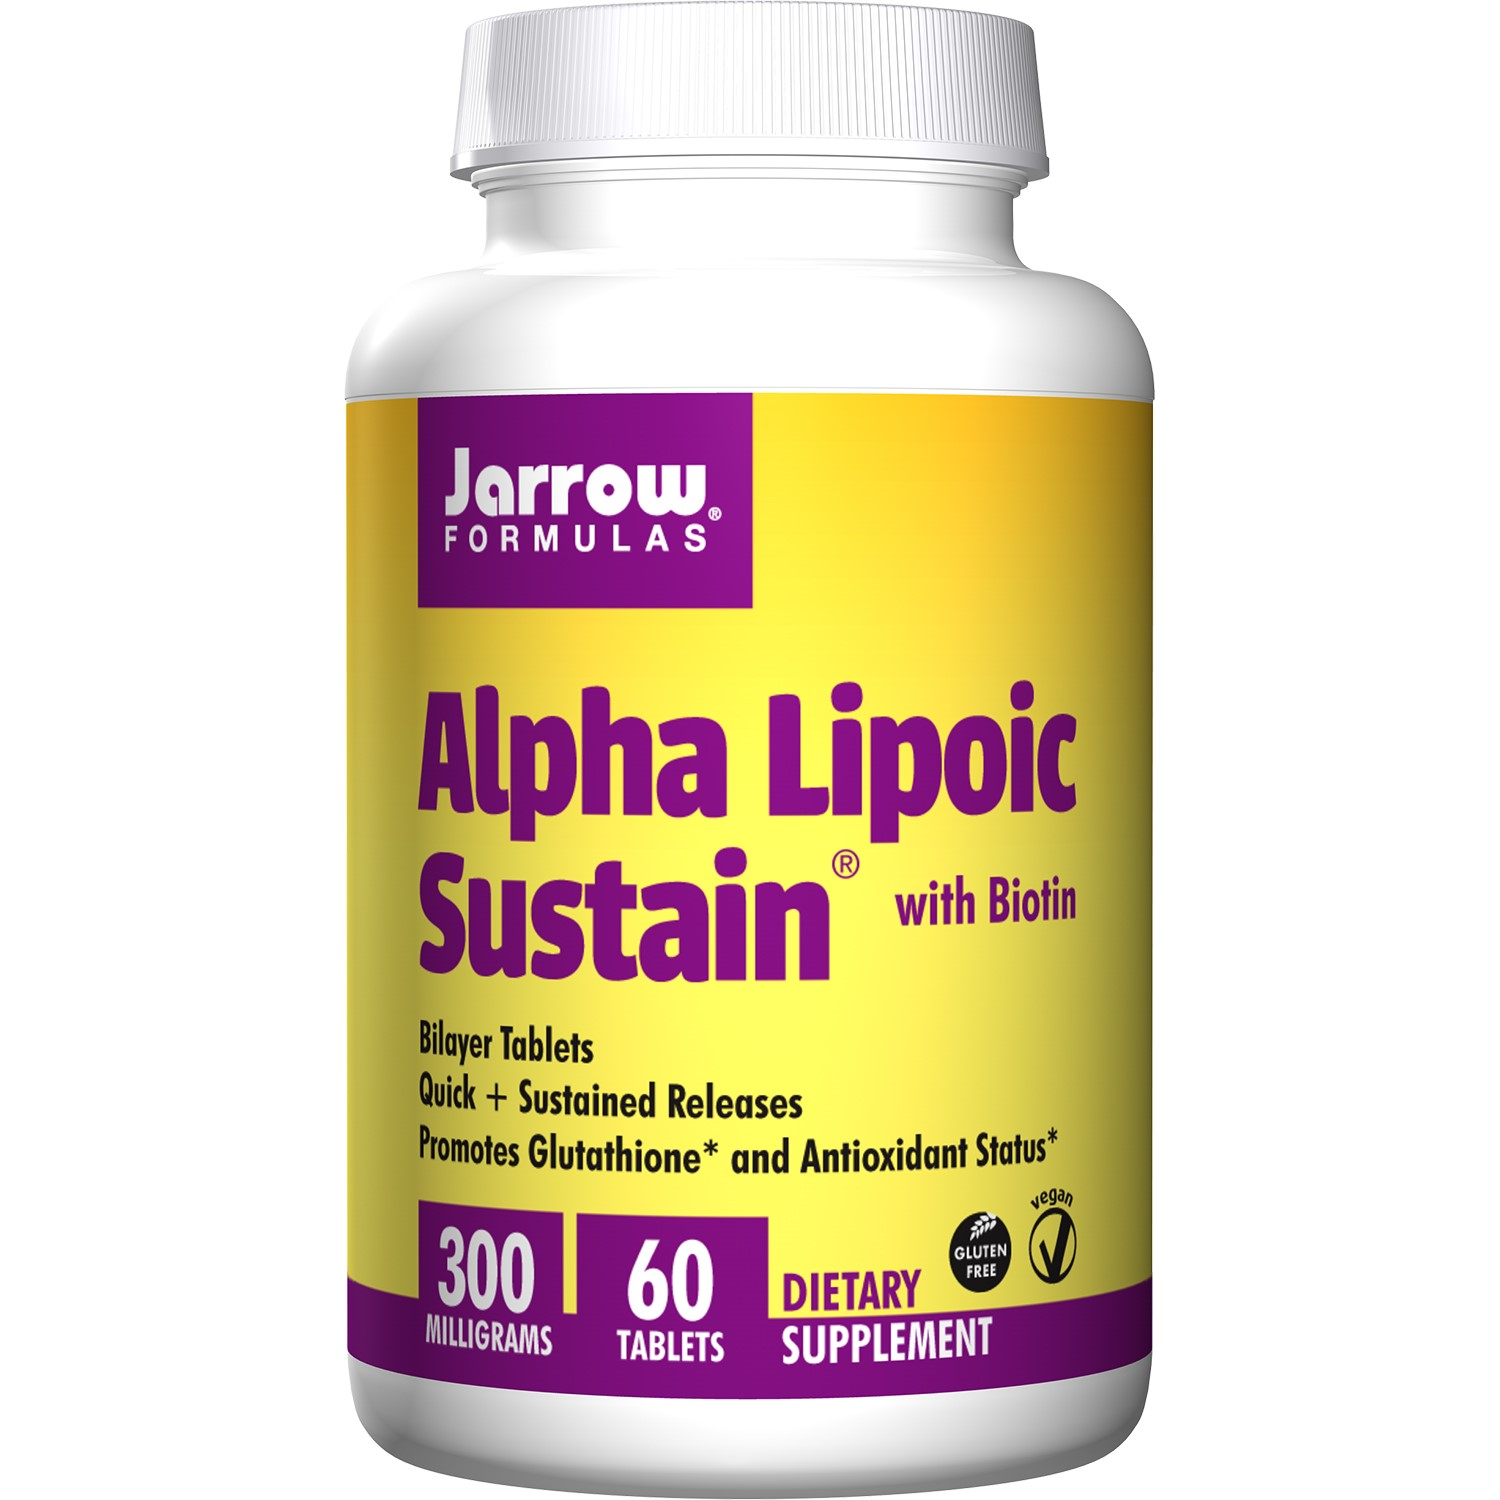 Jarrow Formulas Alpha Lipoic Sustain 300 with Biotin, Tablet